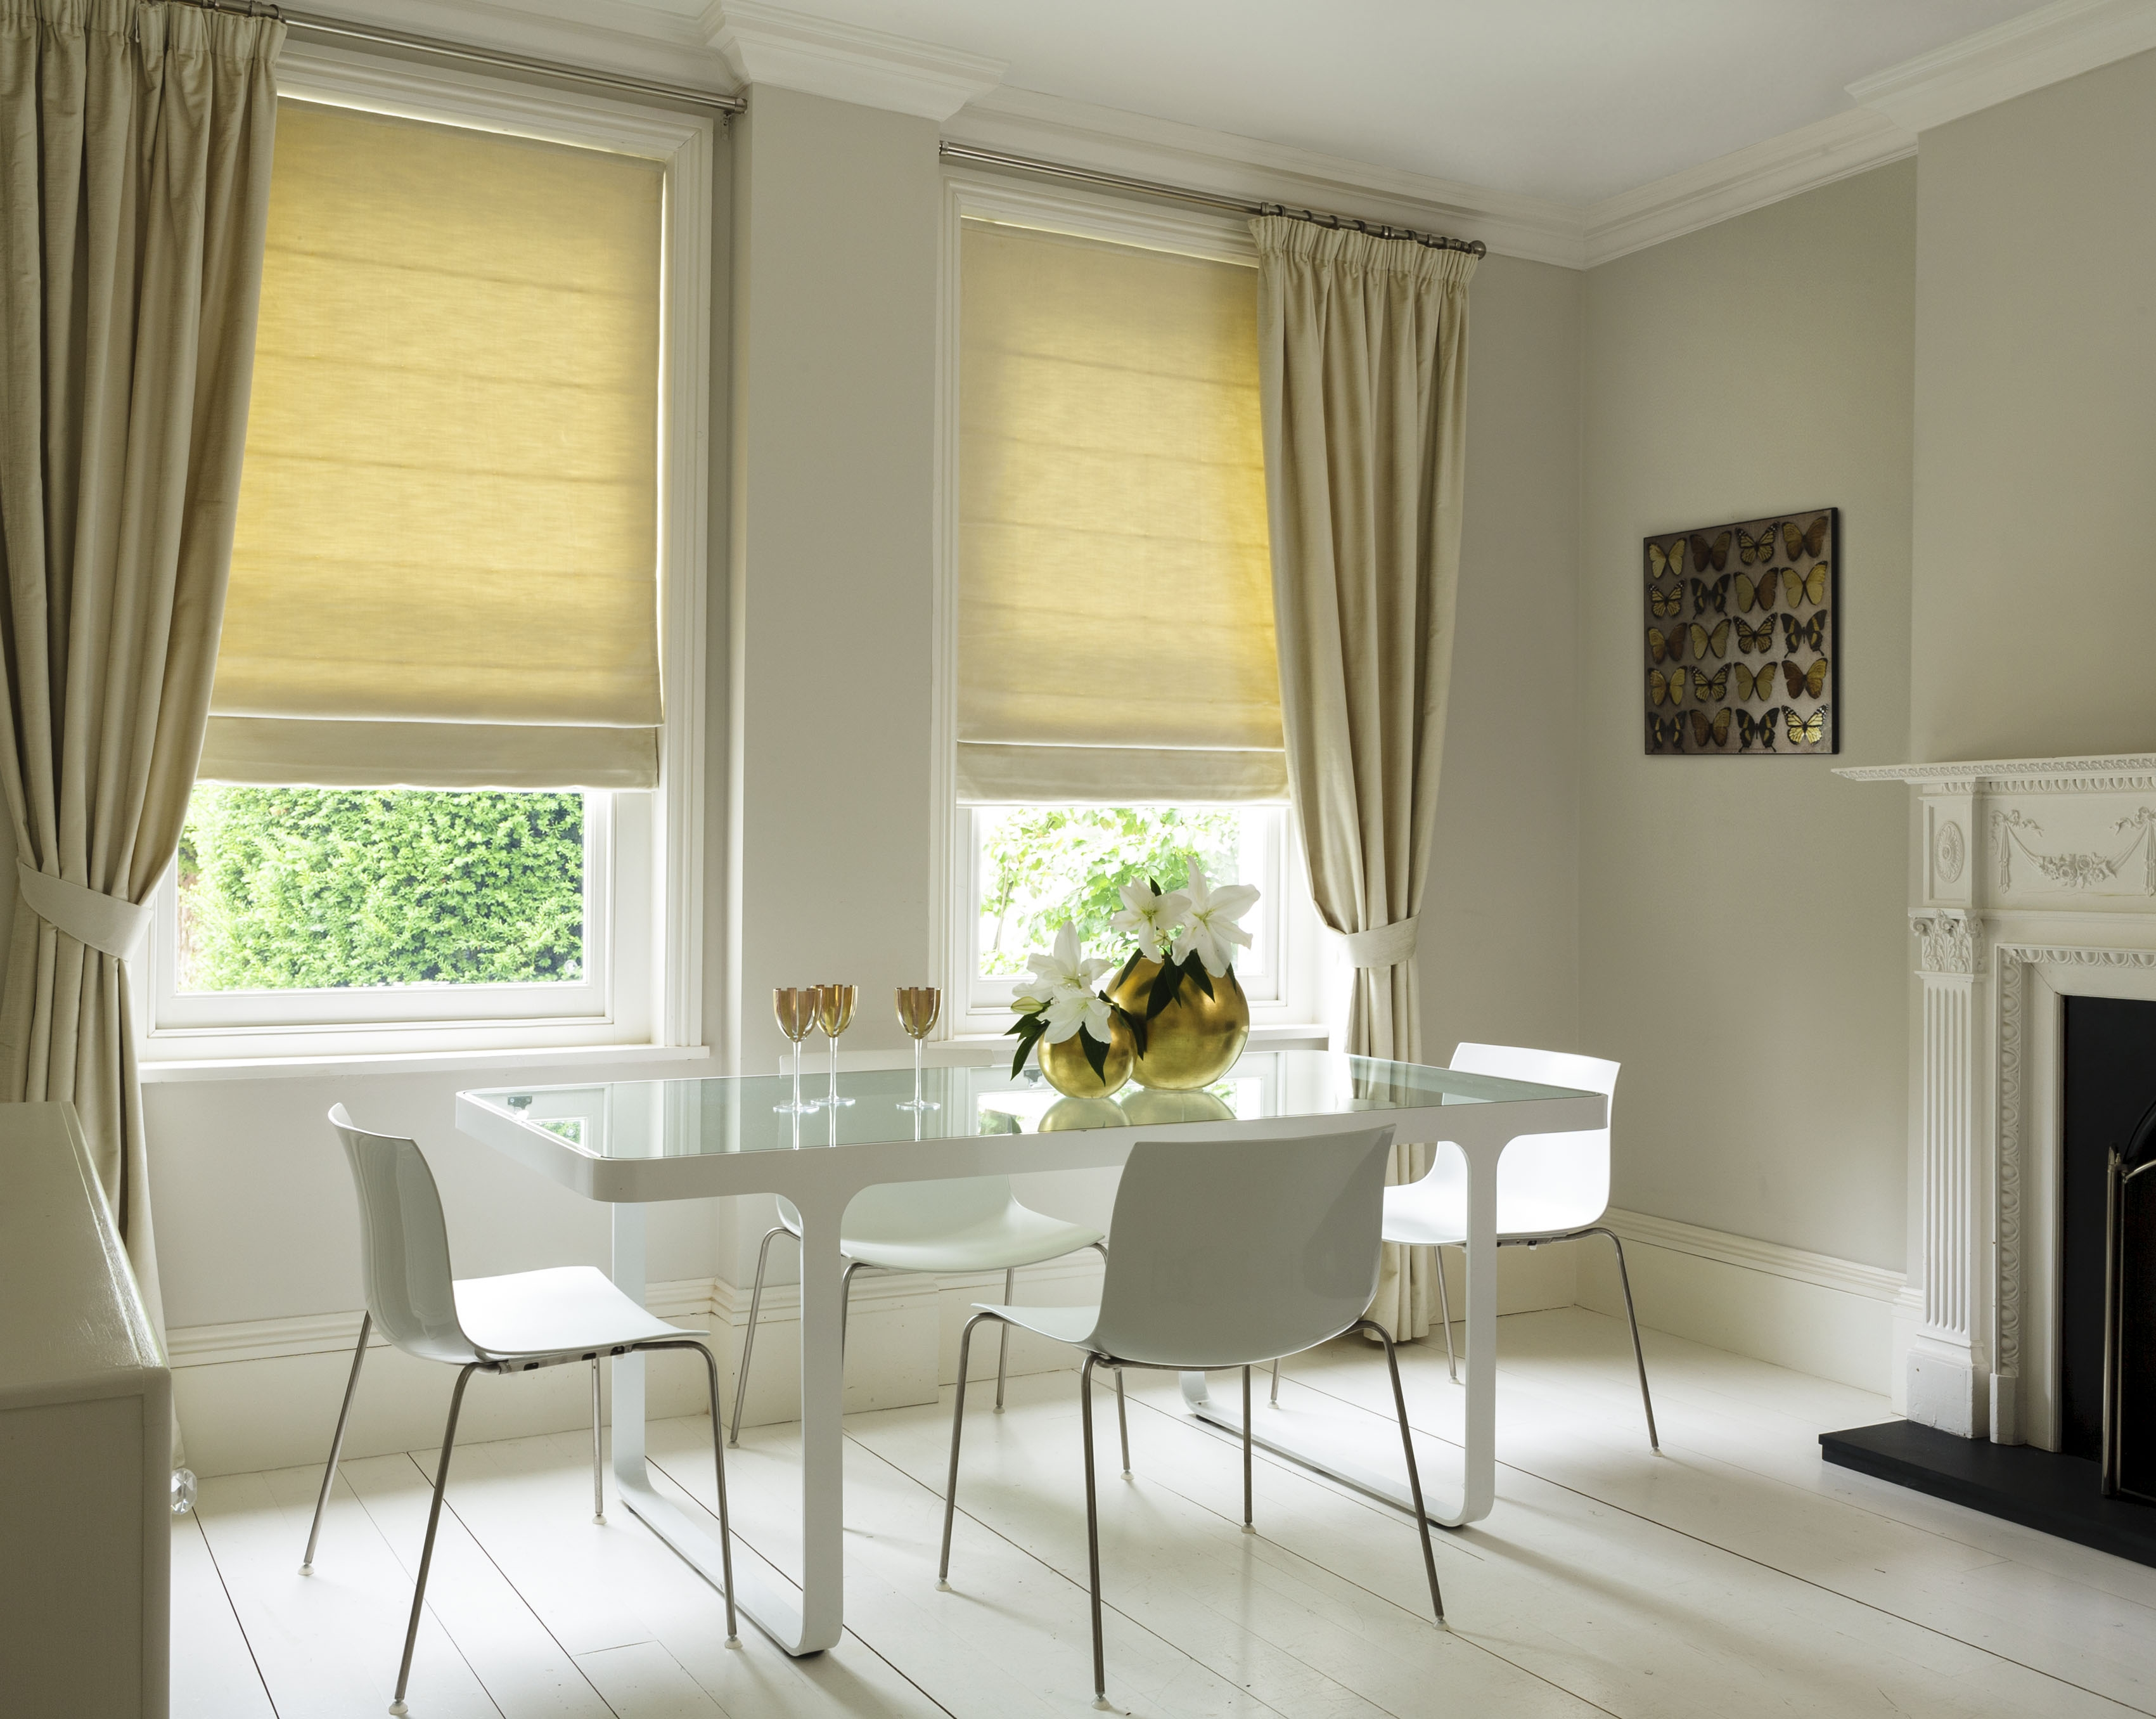 Cheapest Blinds Uk Ltd Cream Stripe Roman Blinds Pertaining To Striped Roman Blinds (Image 3 of 15)